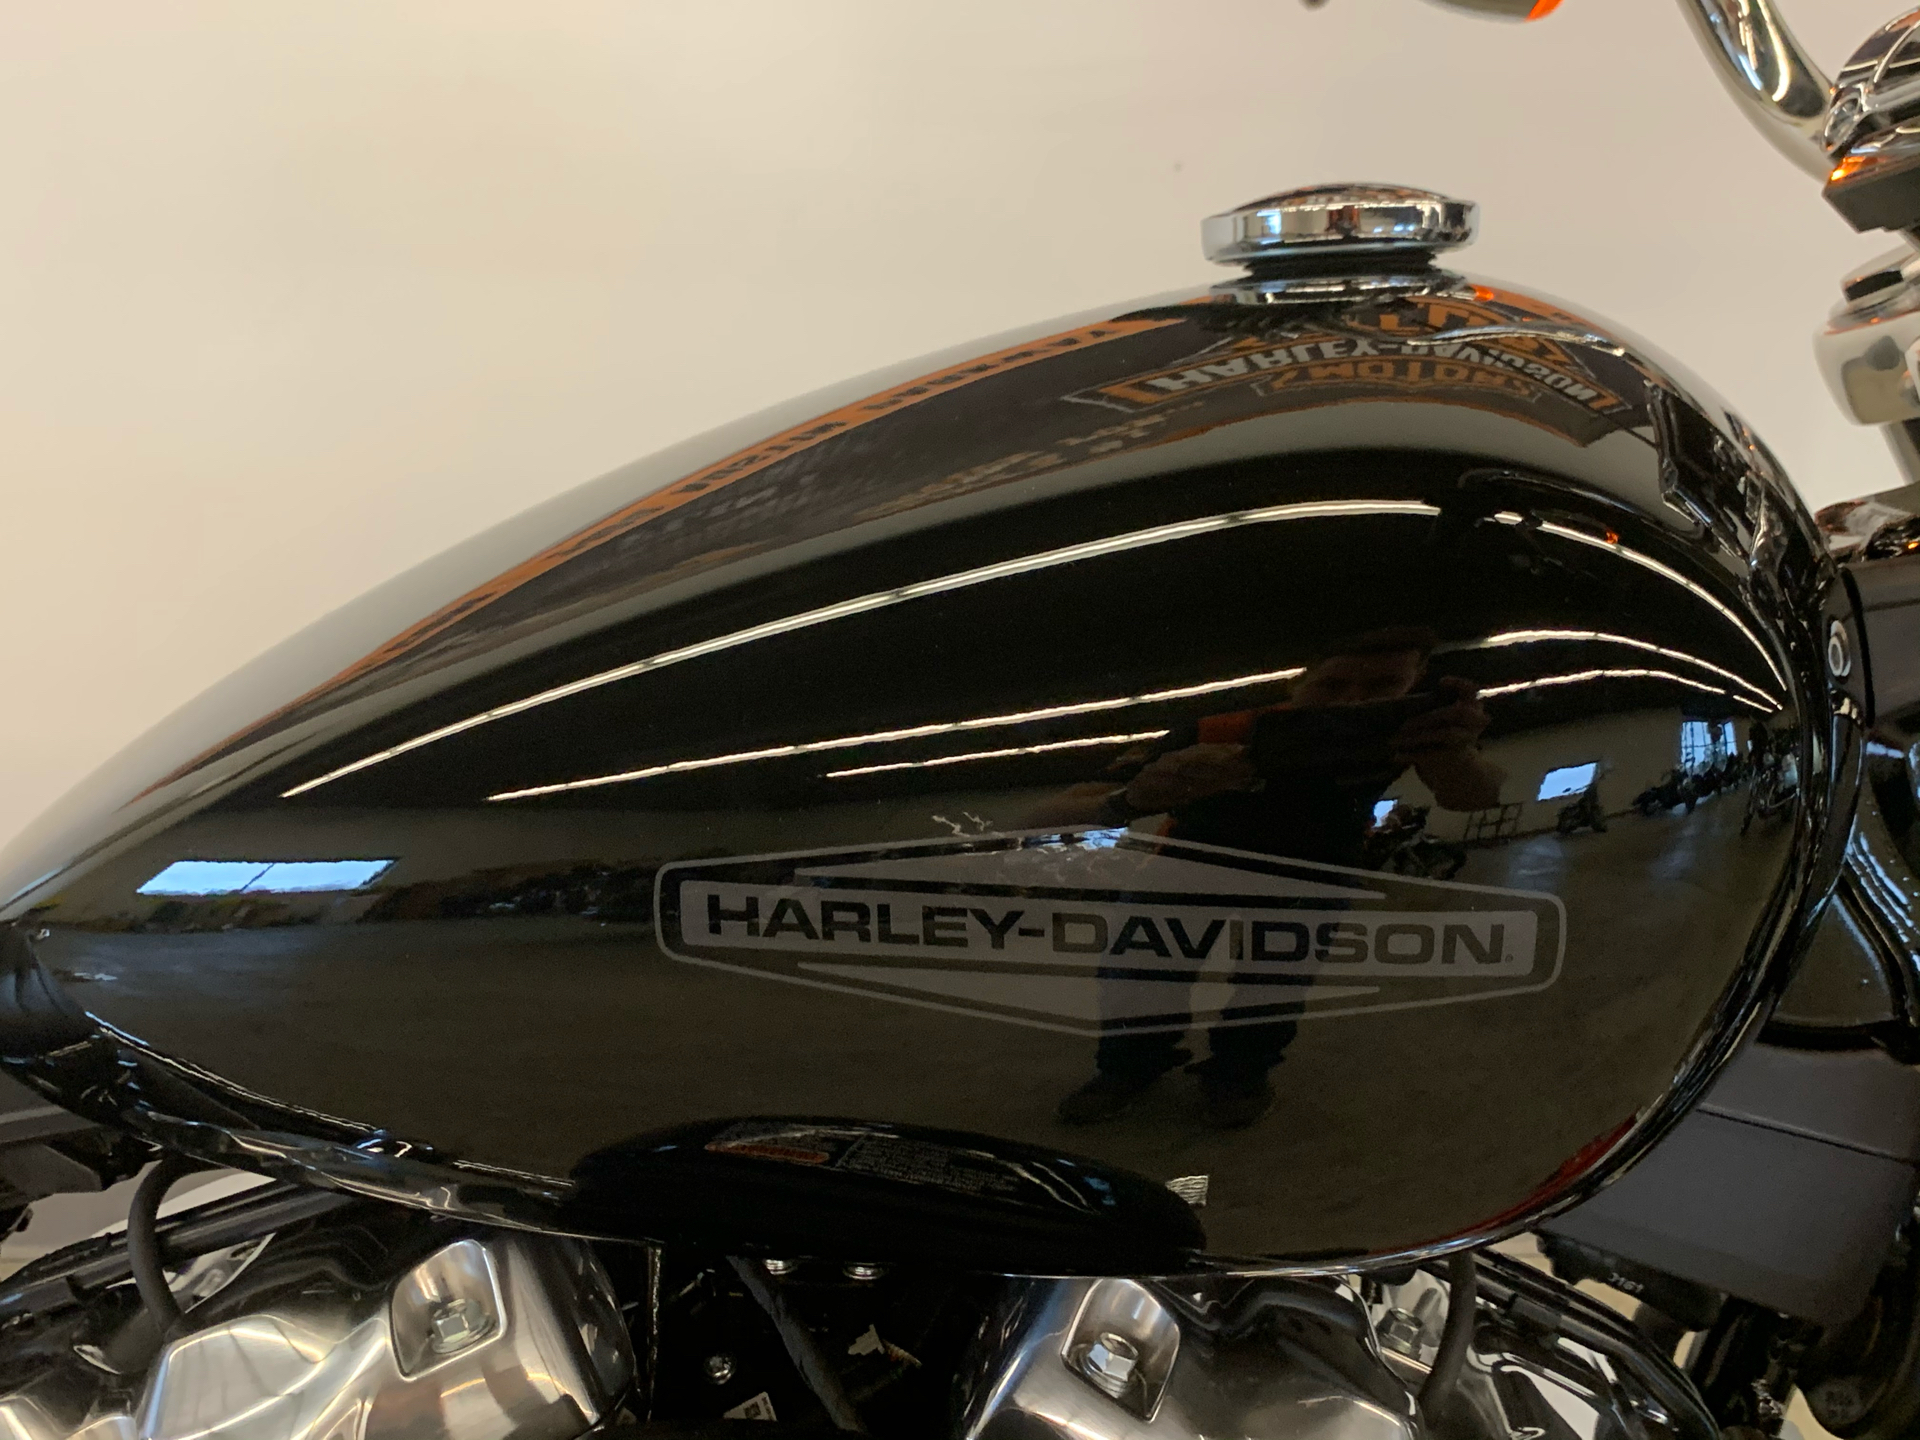 2021 Harley-Davidson SOFTAIL STANDARD in Flint, Michigan - Photo 11